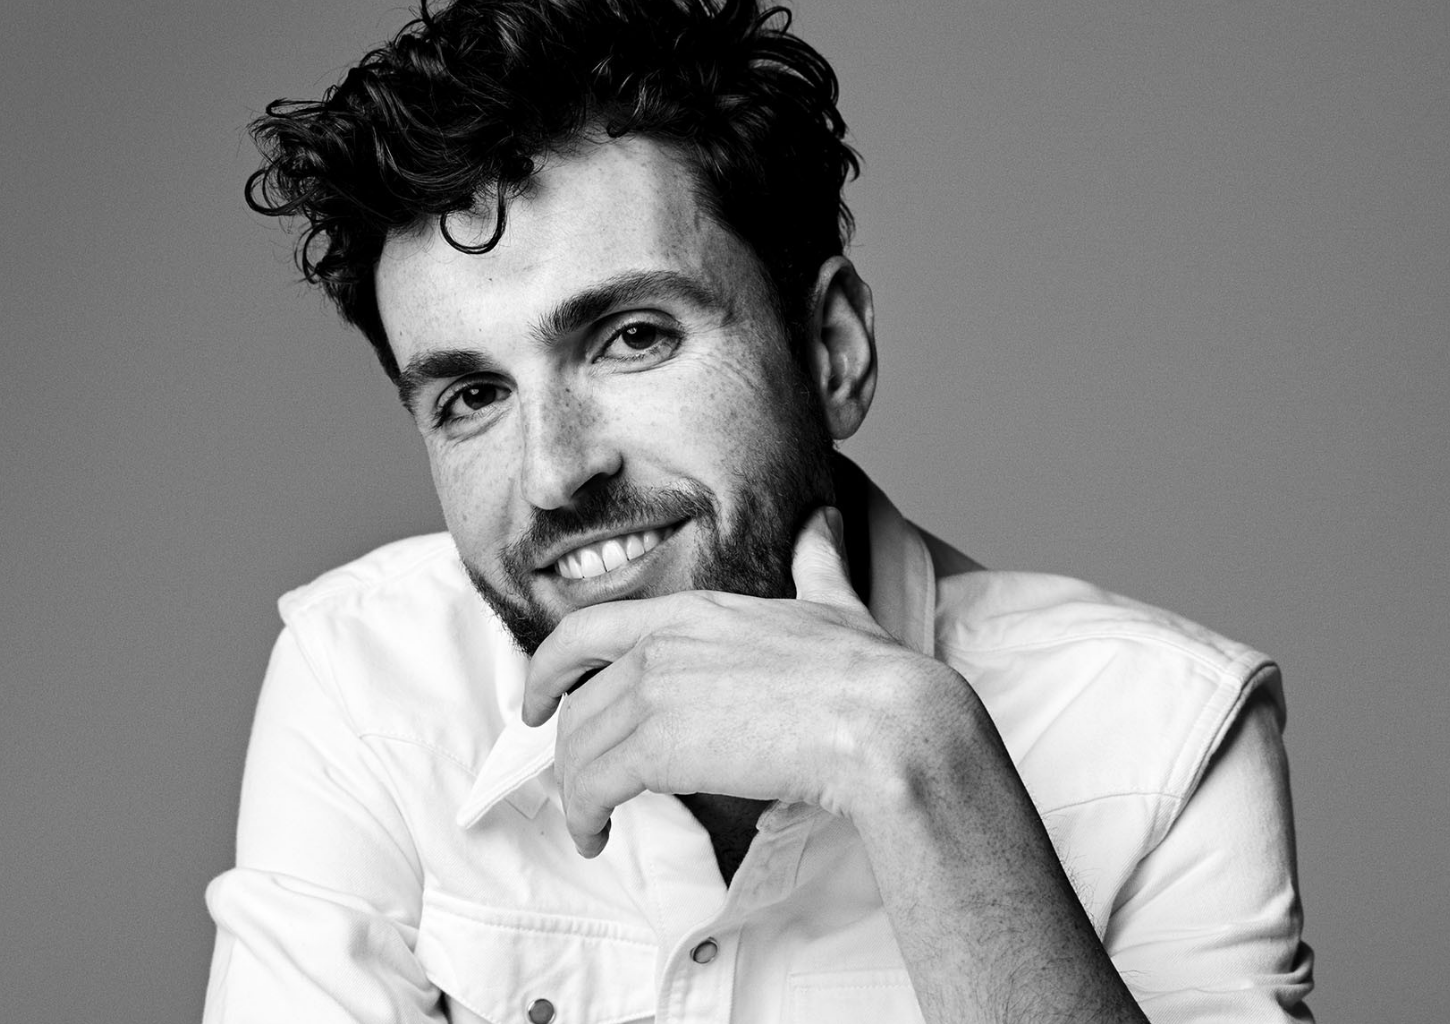 Duncan Laurence from The Netherlands